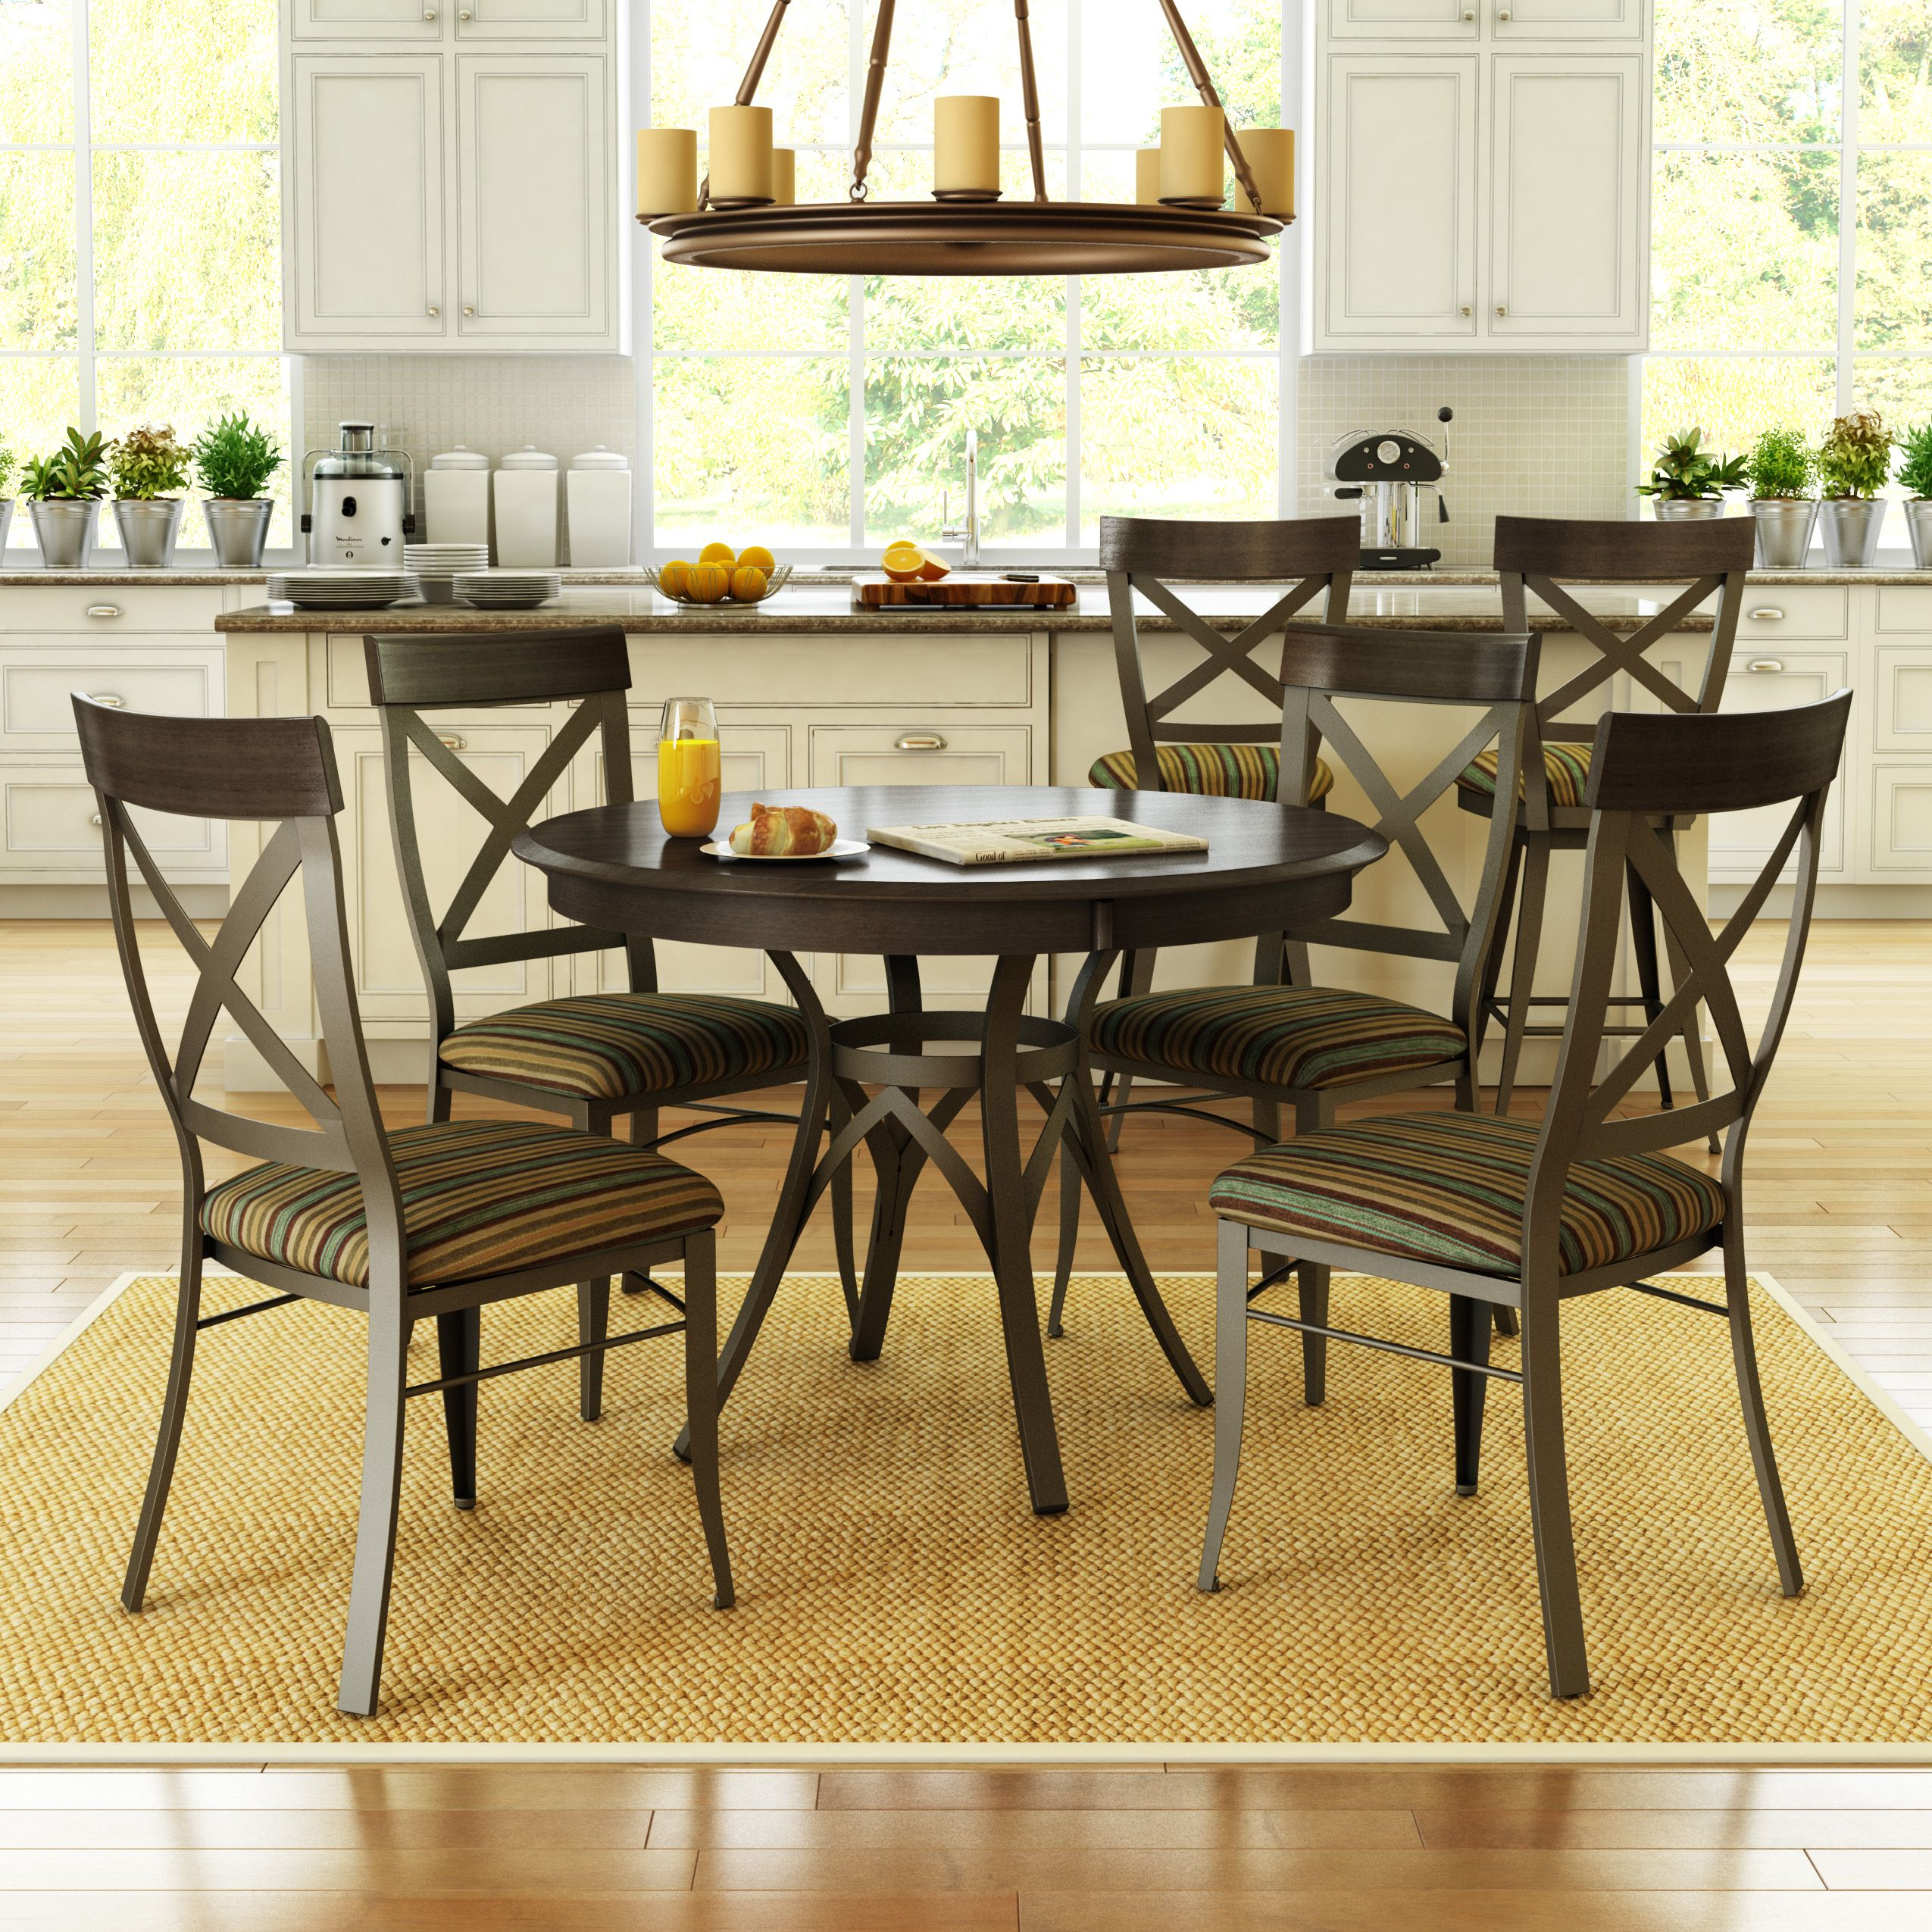 AMISCO Kyle Chair Furniture Kitchen Countryside